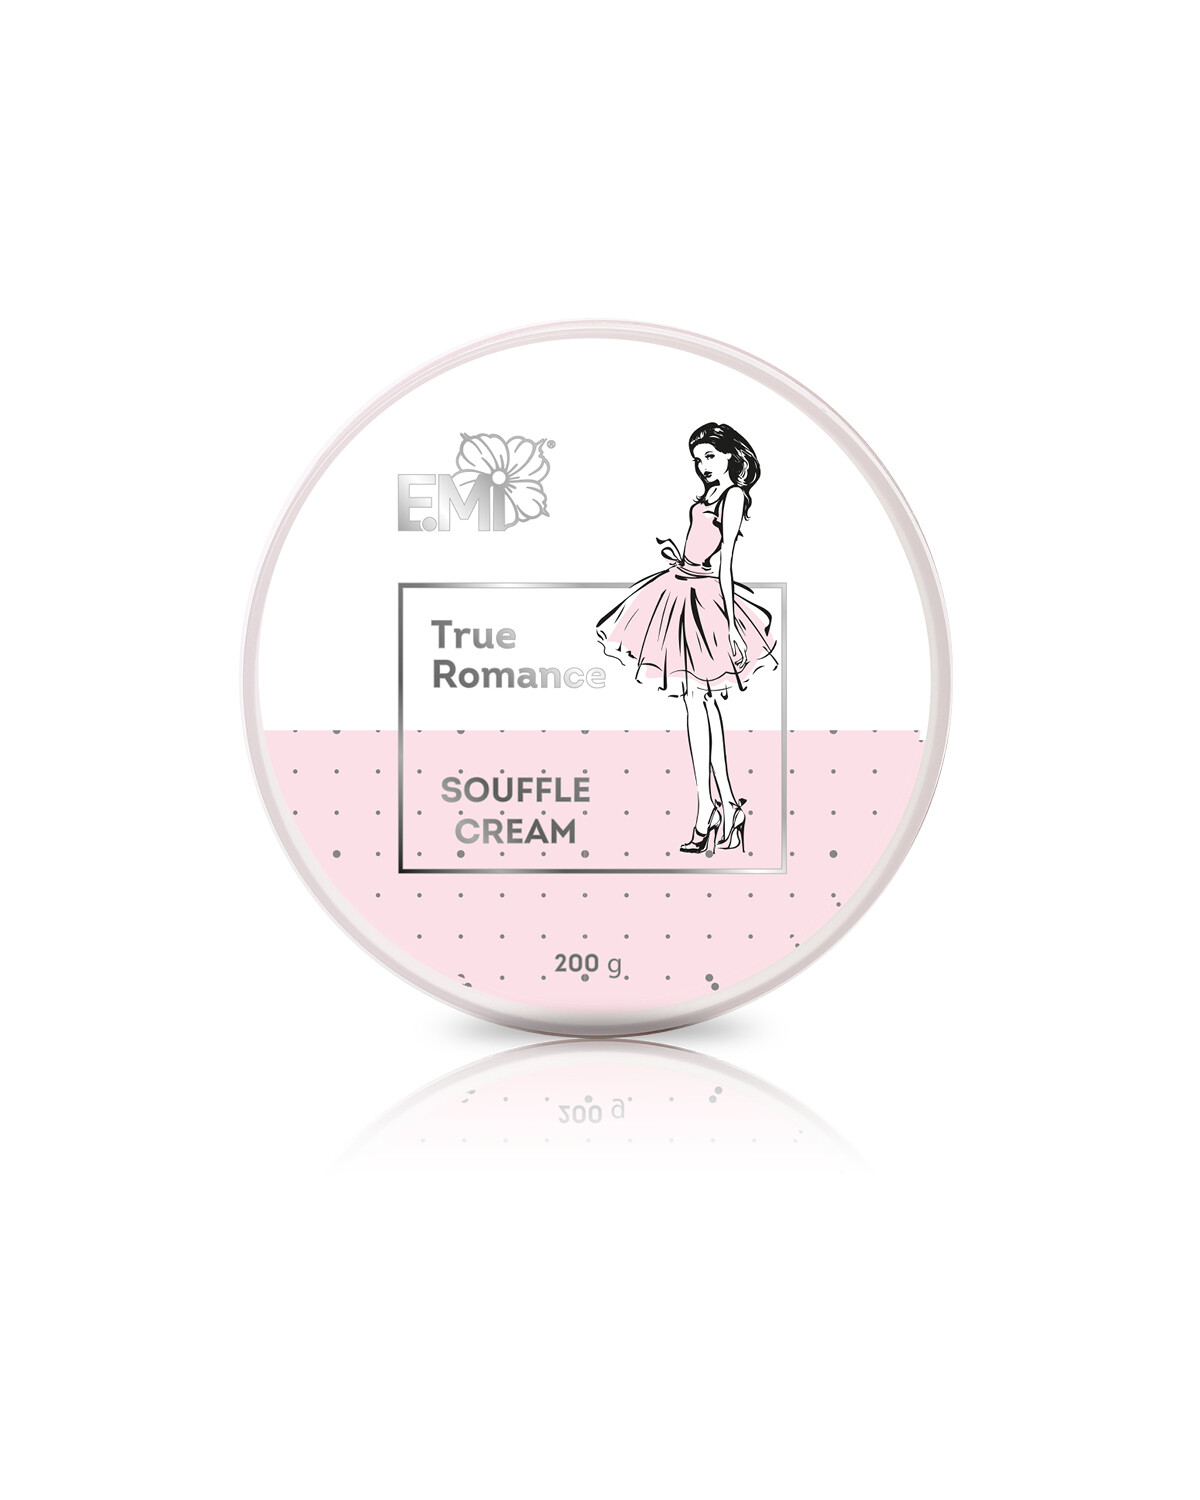 Hand and Body Cream Souffle True Romance, 200 ml.